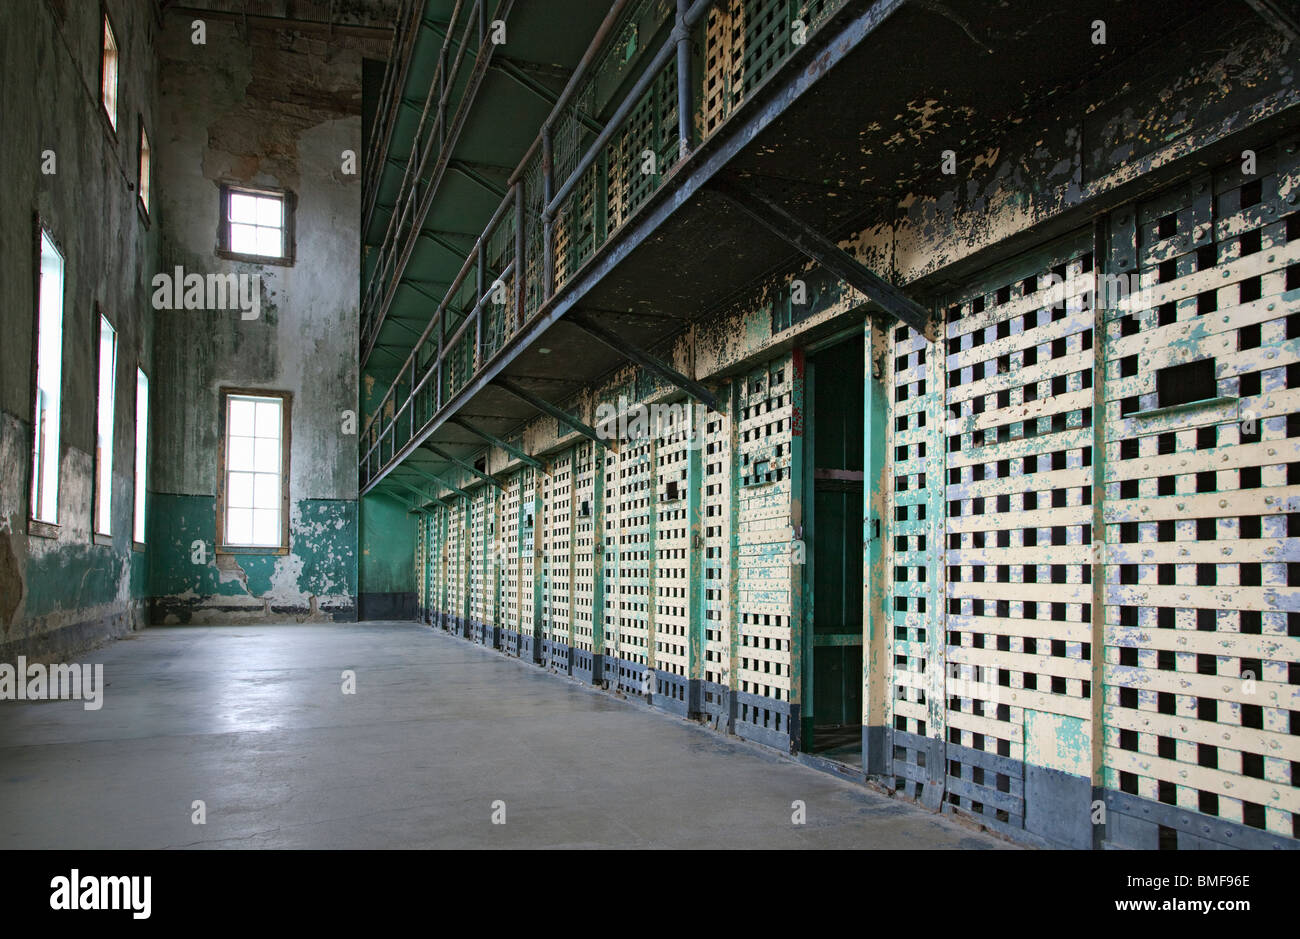 A Cellblock at the old Idaho Penitentiary in Boise, Idaho - Stock Image